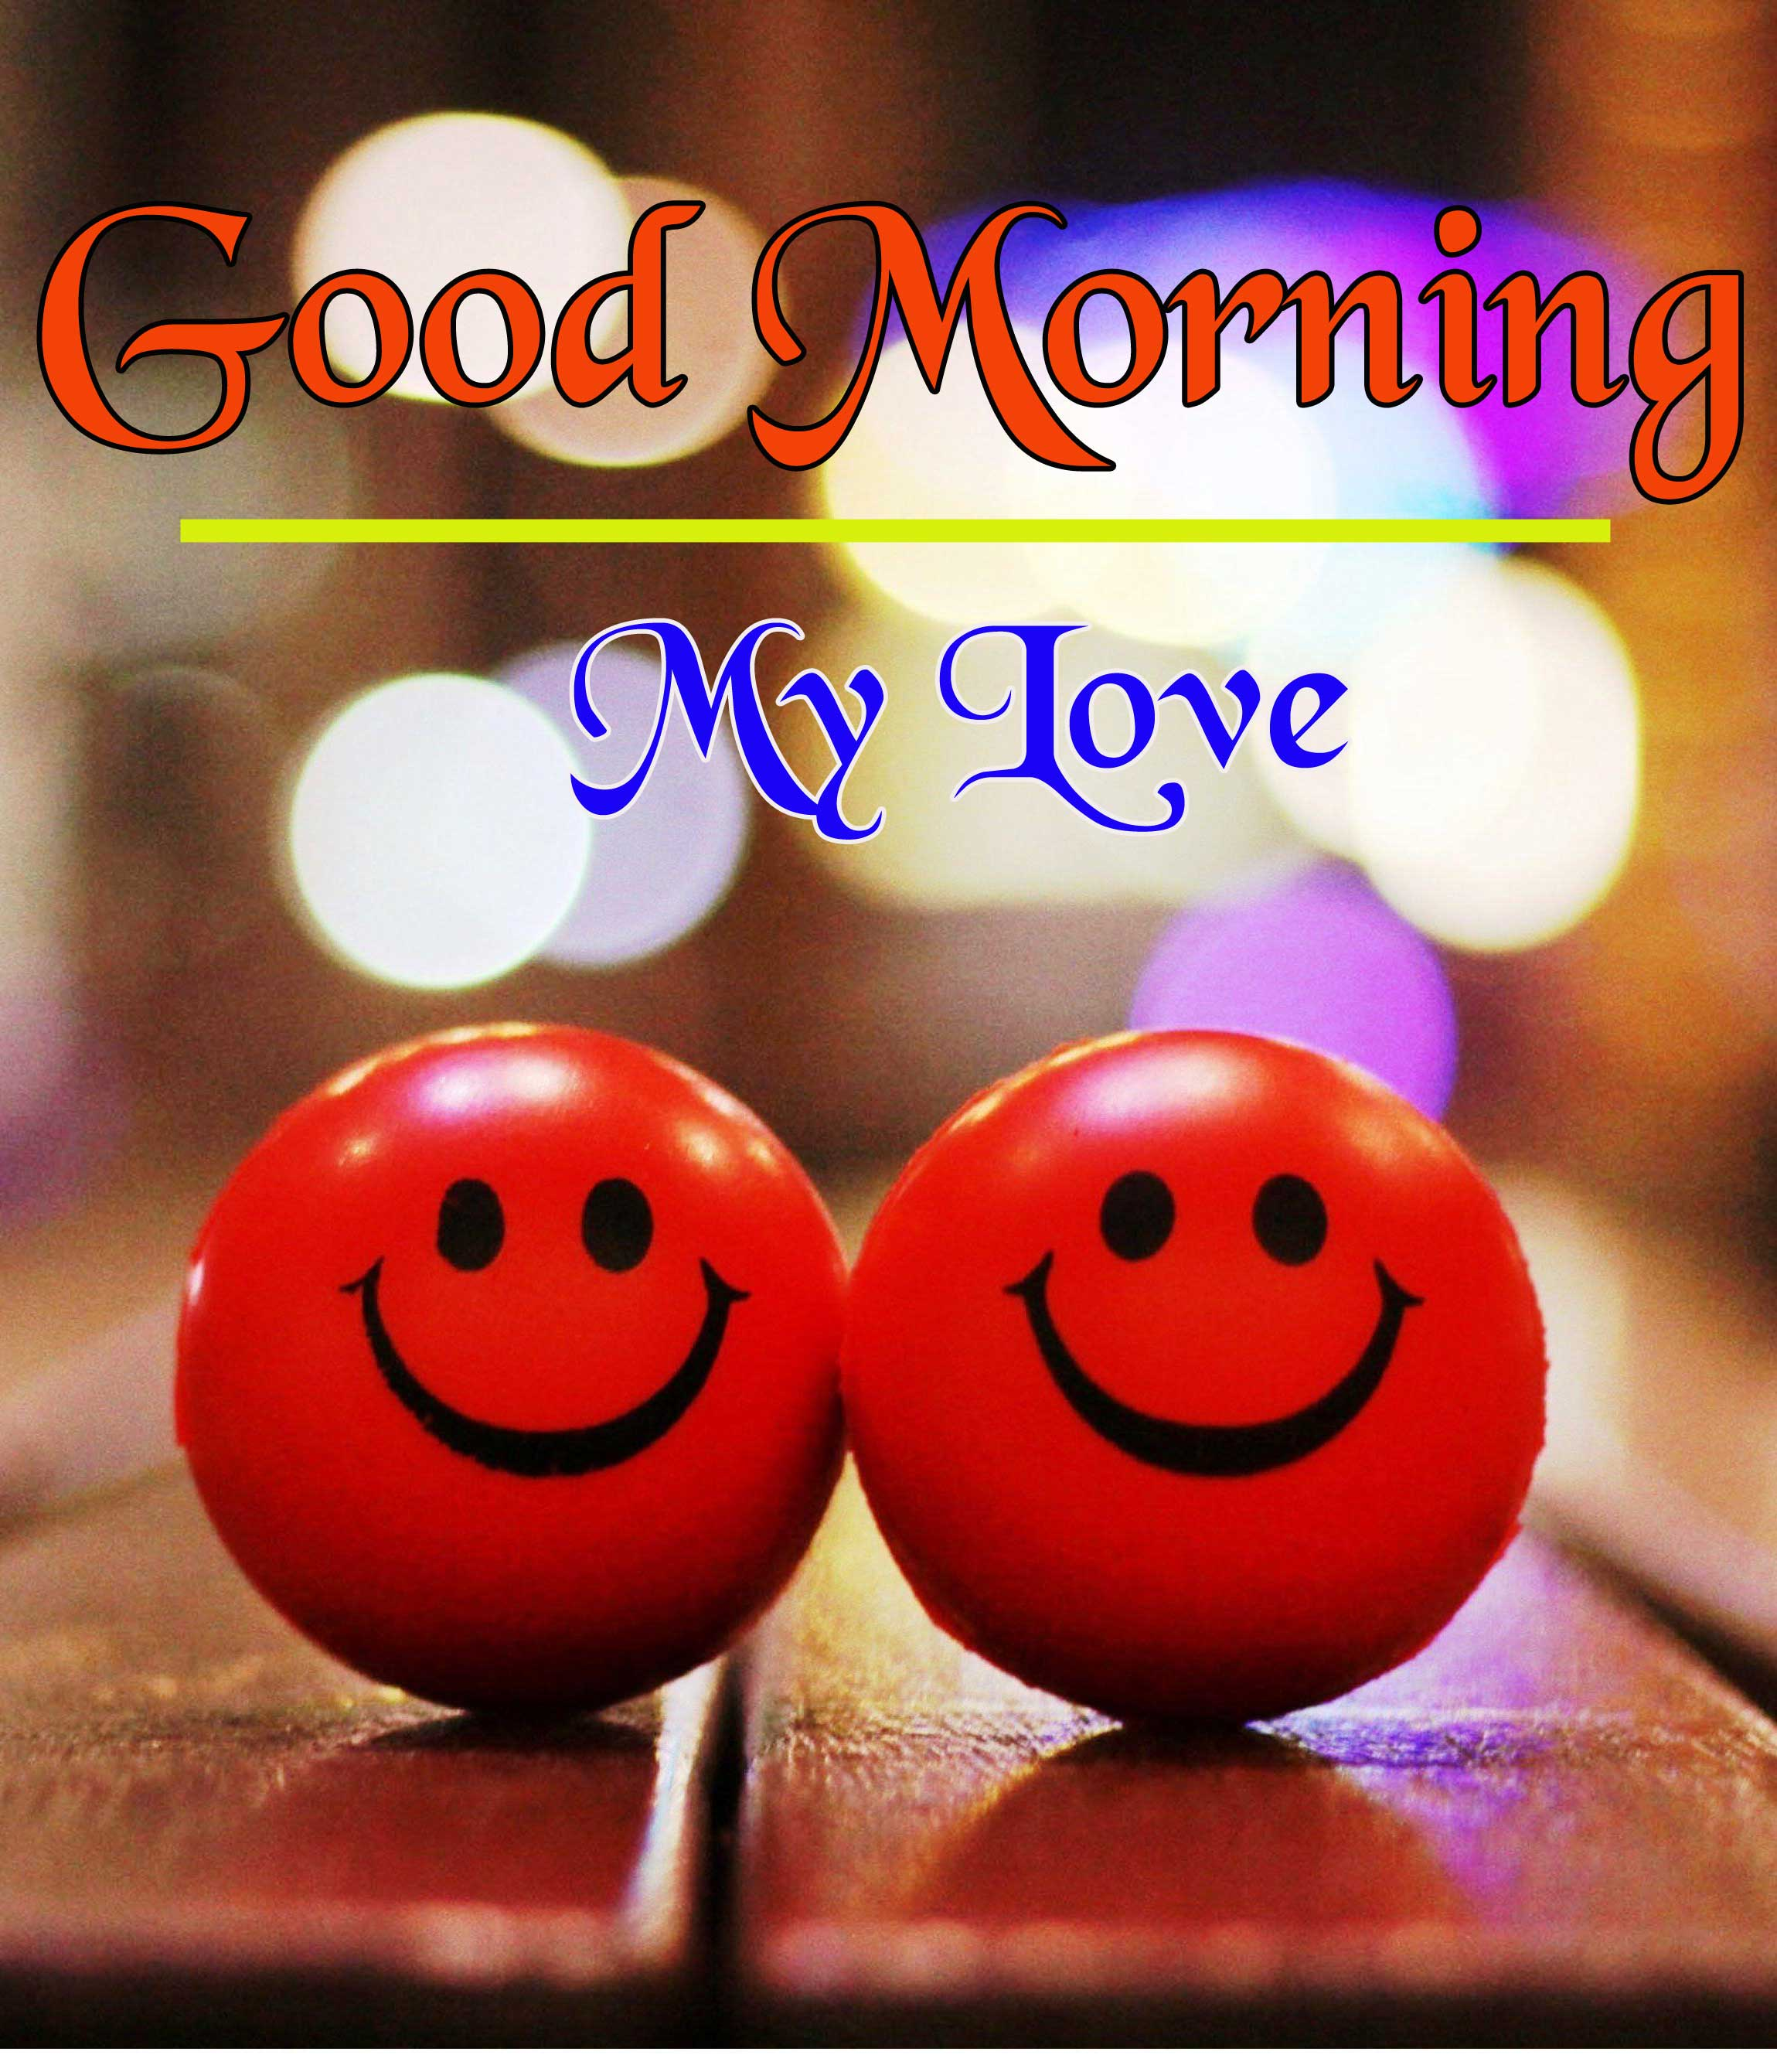 Lover / Couple Beautiful HD Good Morning Images Download